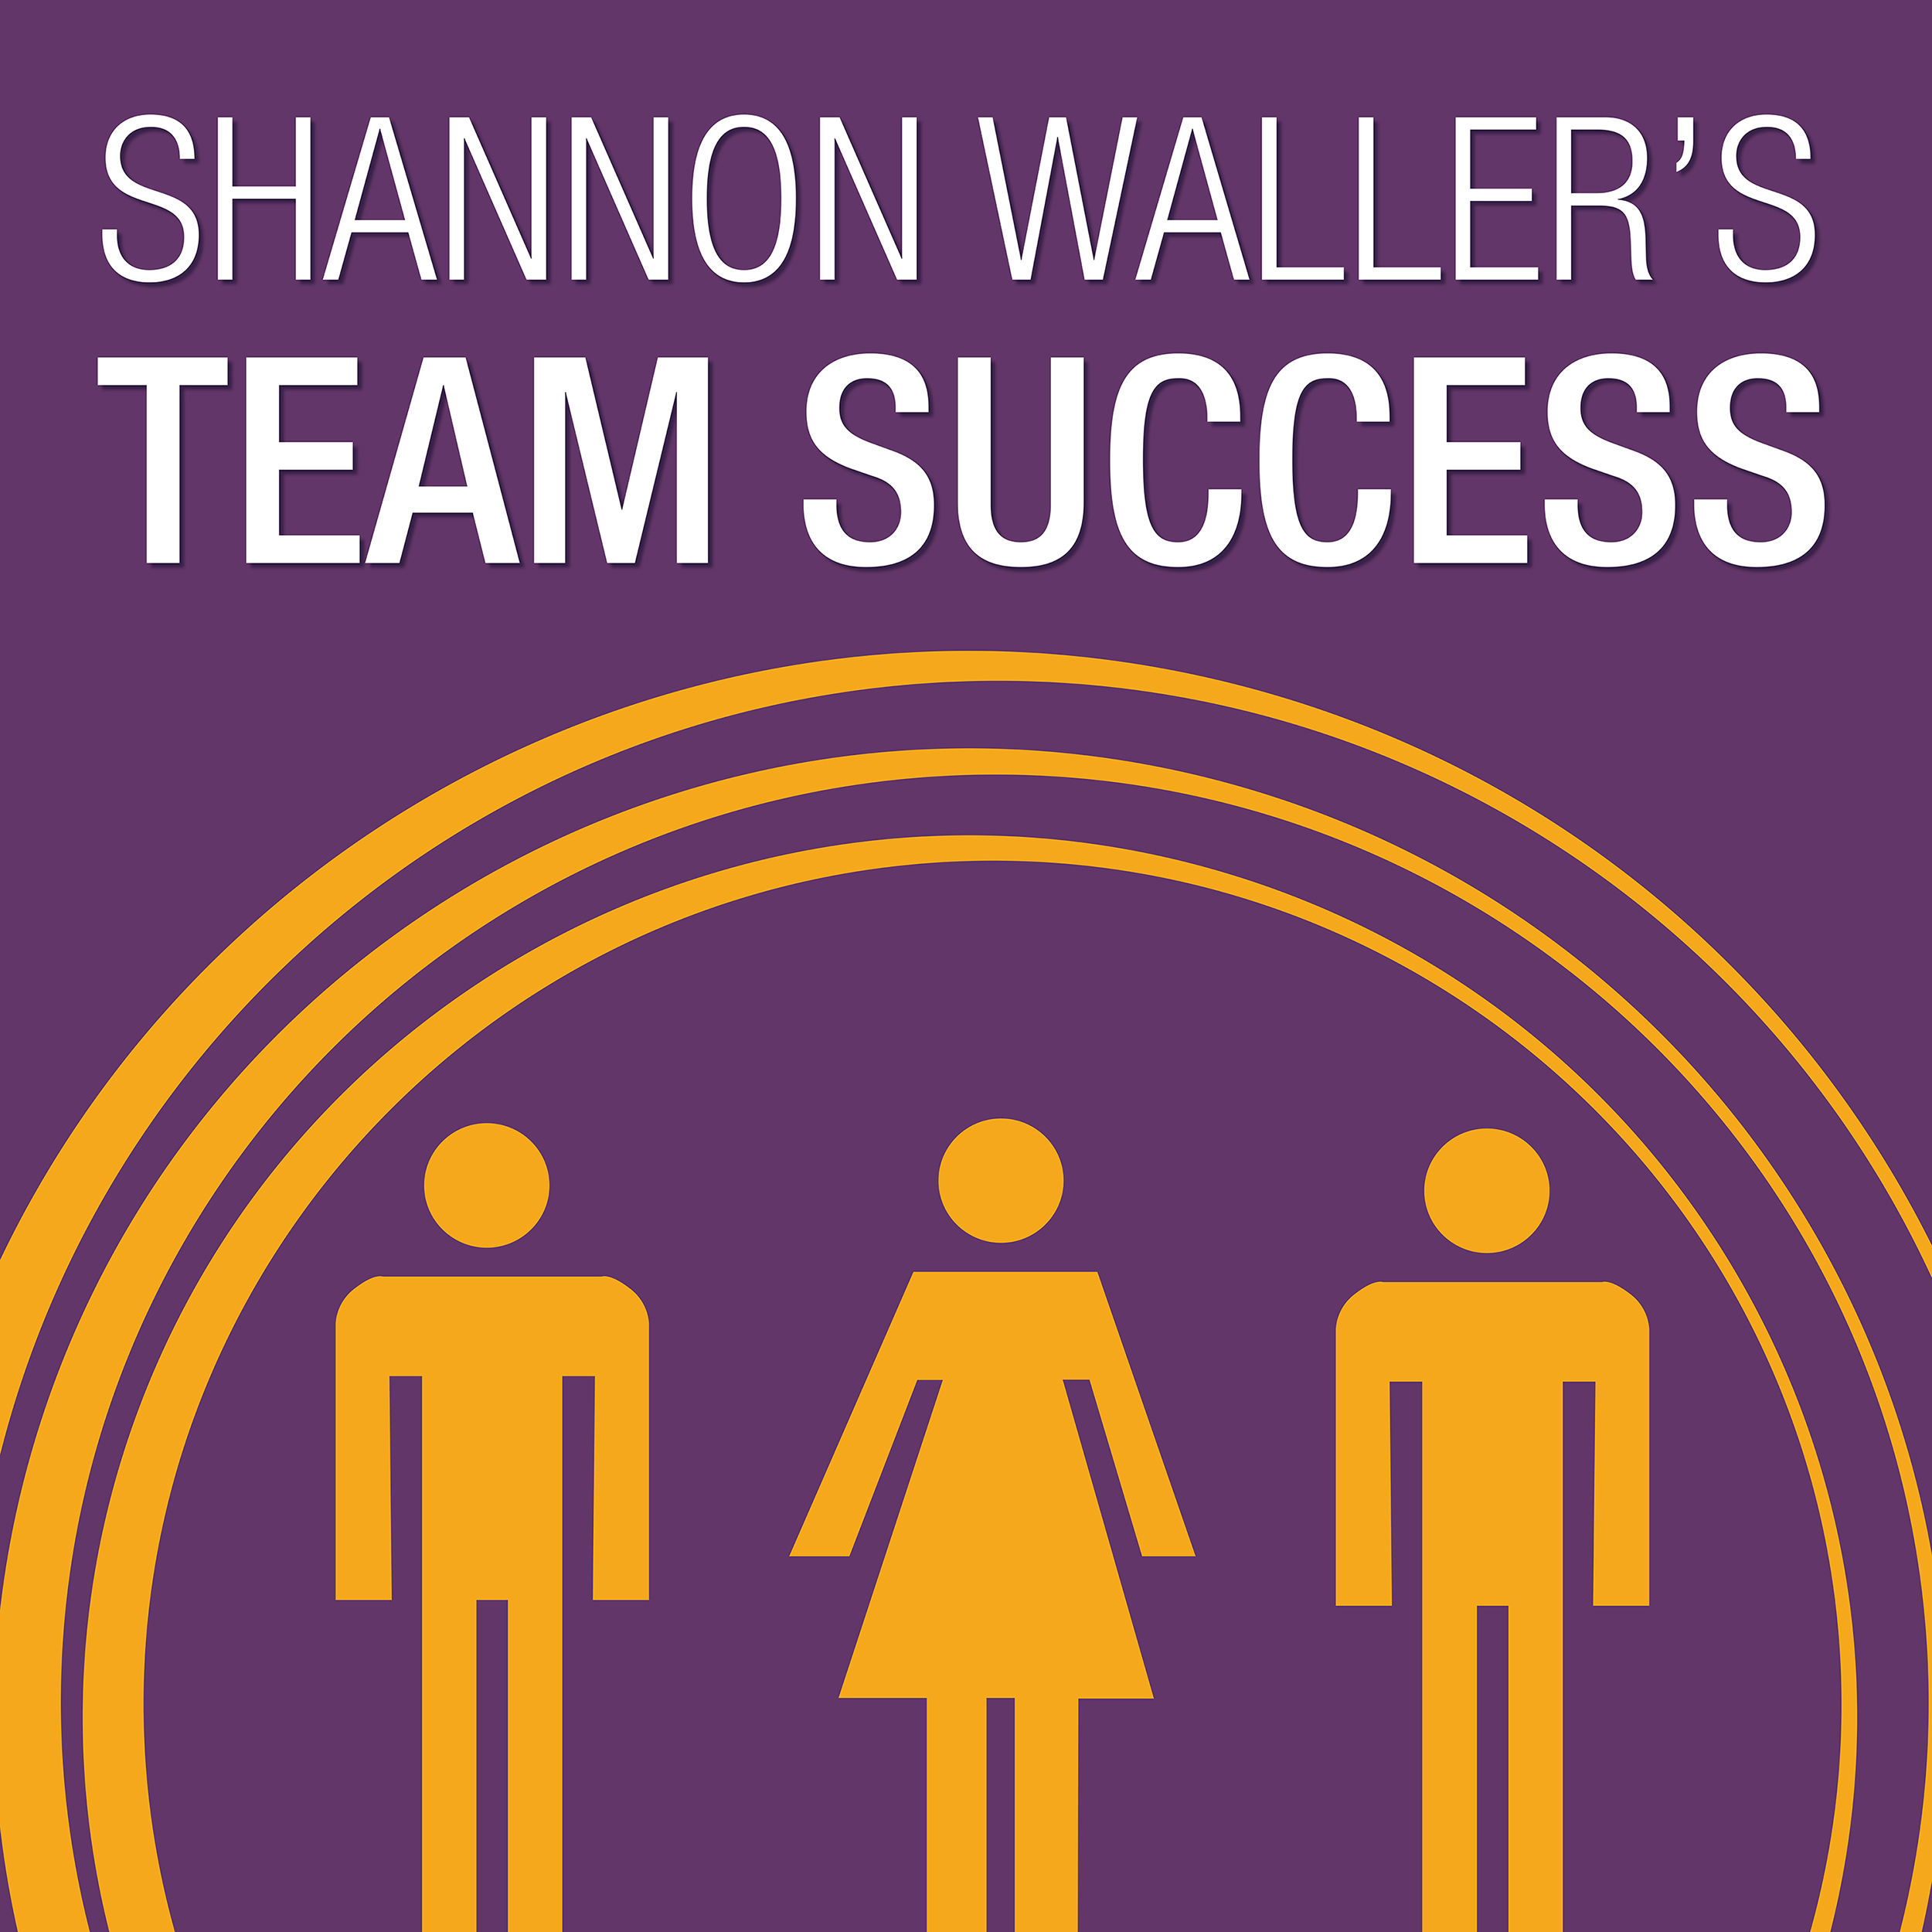 Shannon Waller's Team Success